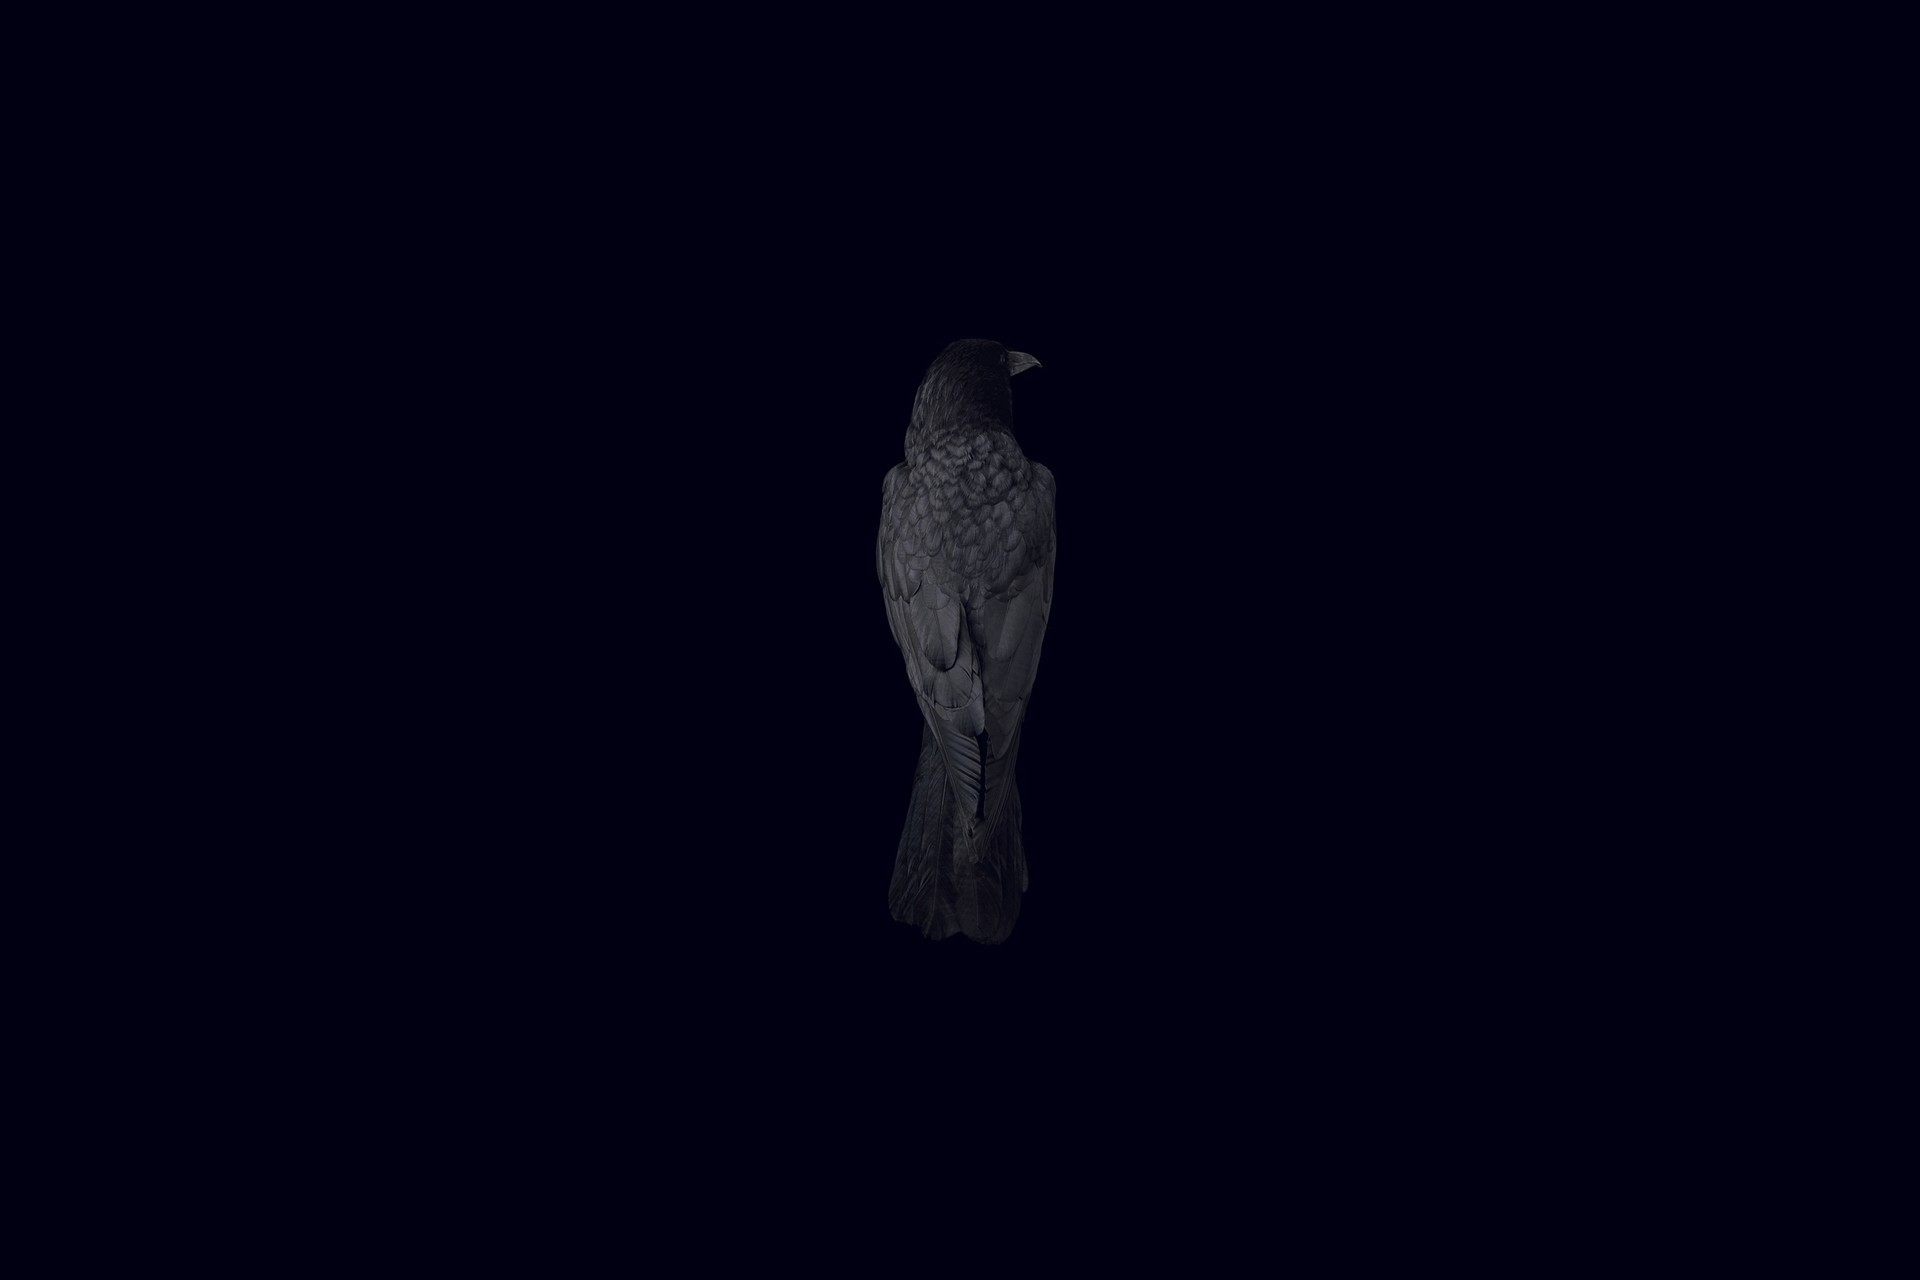 Wallpaper black background bird raven wallpapers minimalism 1920x1280